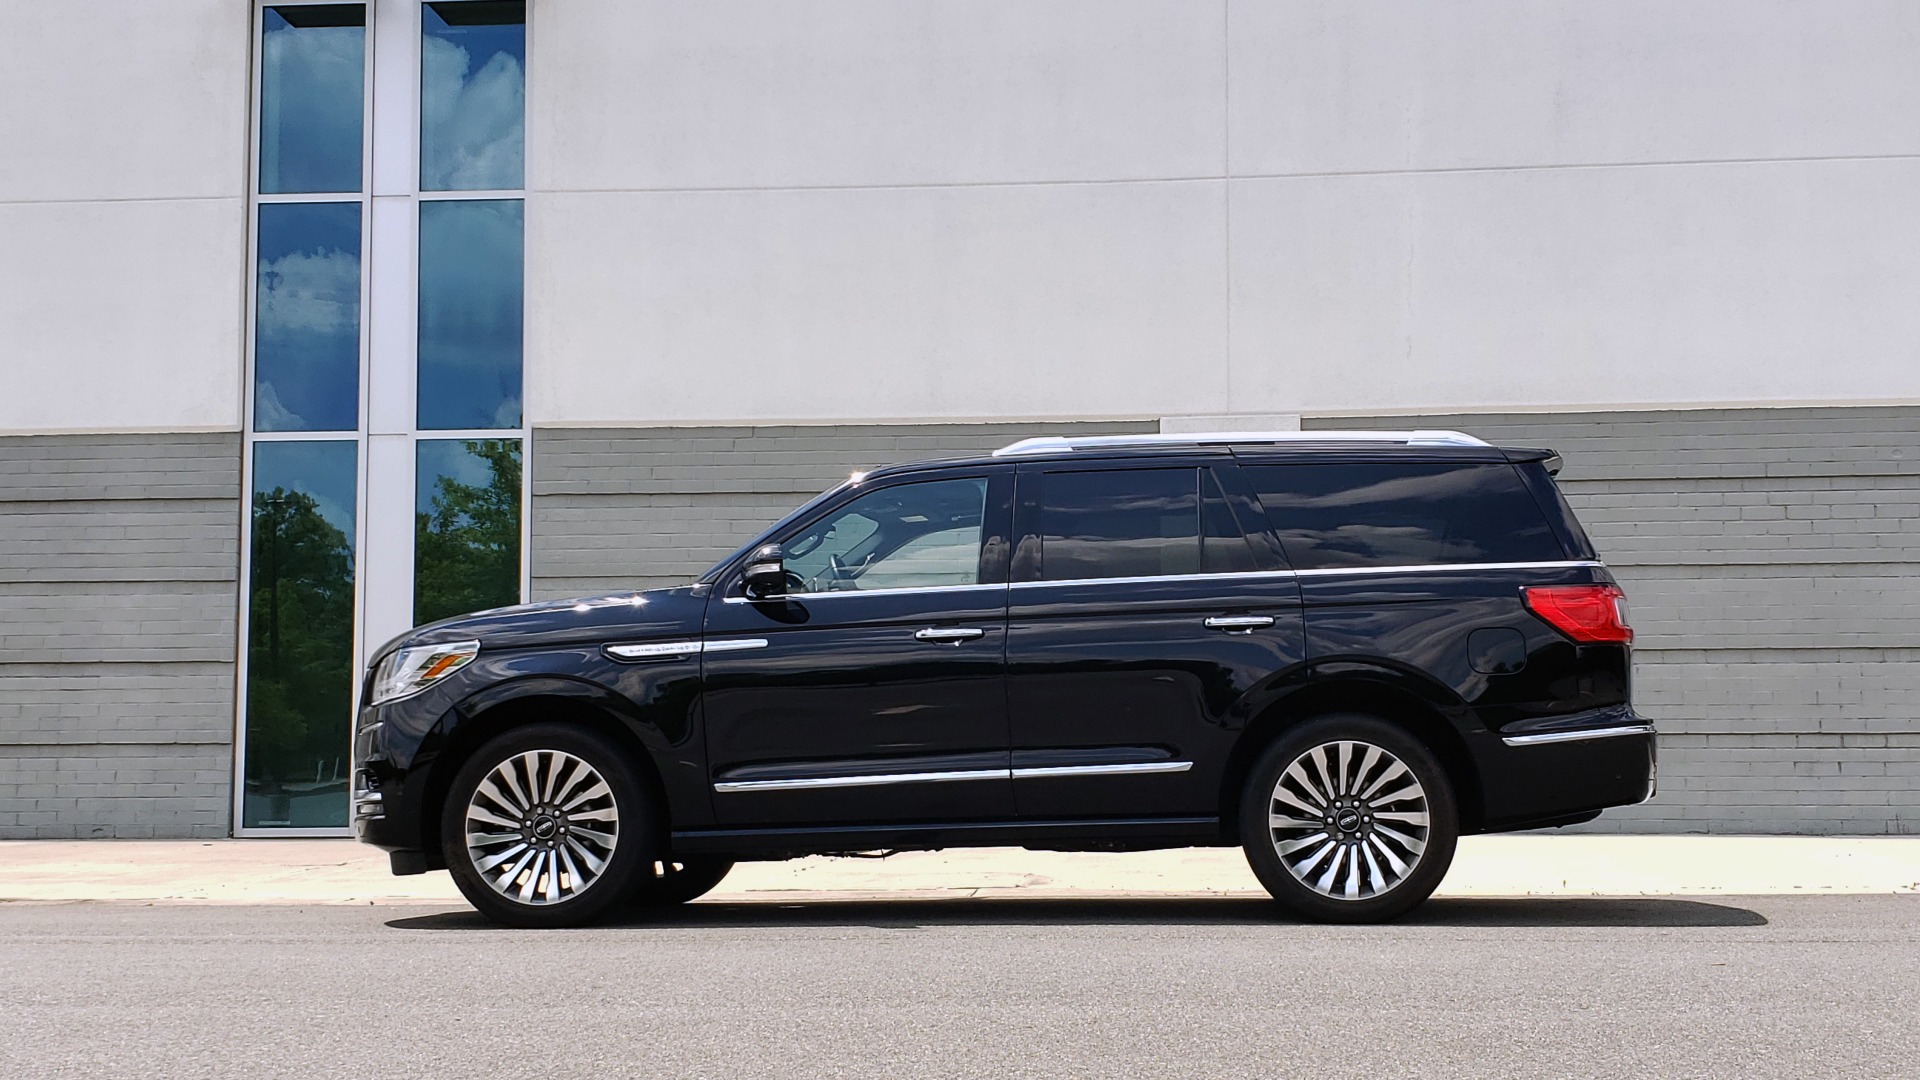 Used 2019 Lincoln NAVIGATOR RESERVE 4X4 / NAV / PANO-ROOF / REVEL ULTIMA AUDIO / 3-ROW / REARVIEW for sale $74,795 at Formula Imports in Charlotte NC 28227 5